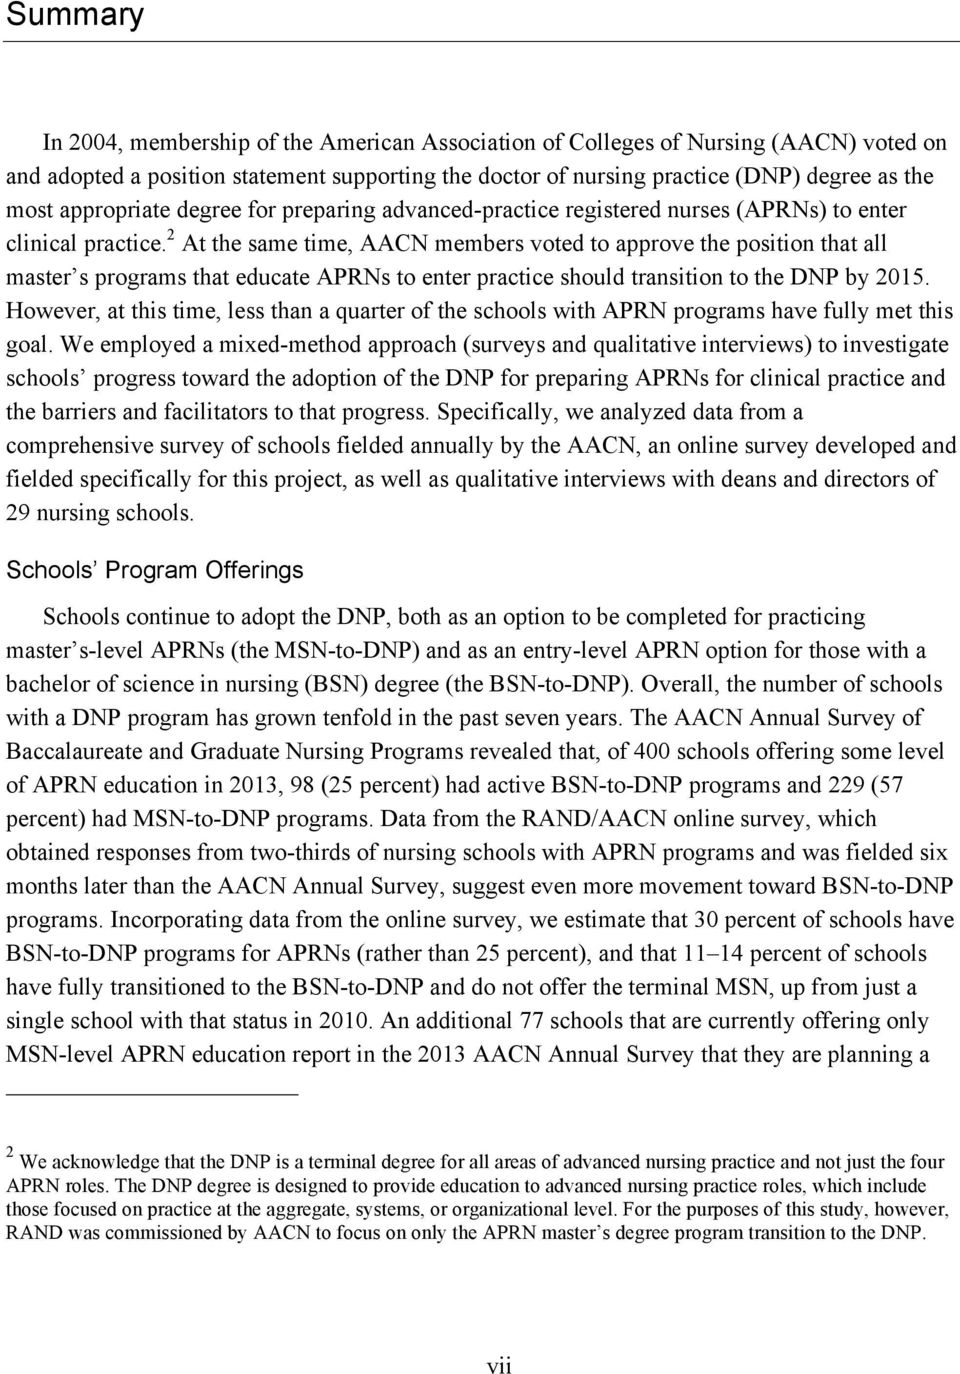 2 At the same time, AACN members voted to approve the position that all master s programs that educate APRNs to enter practice should transition to the DNP by 2015.